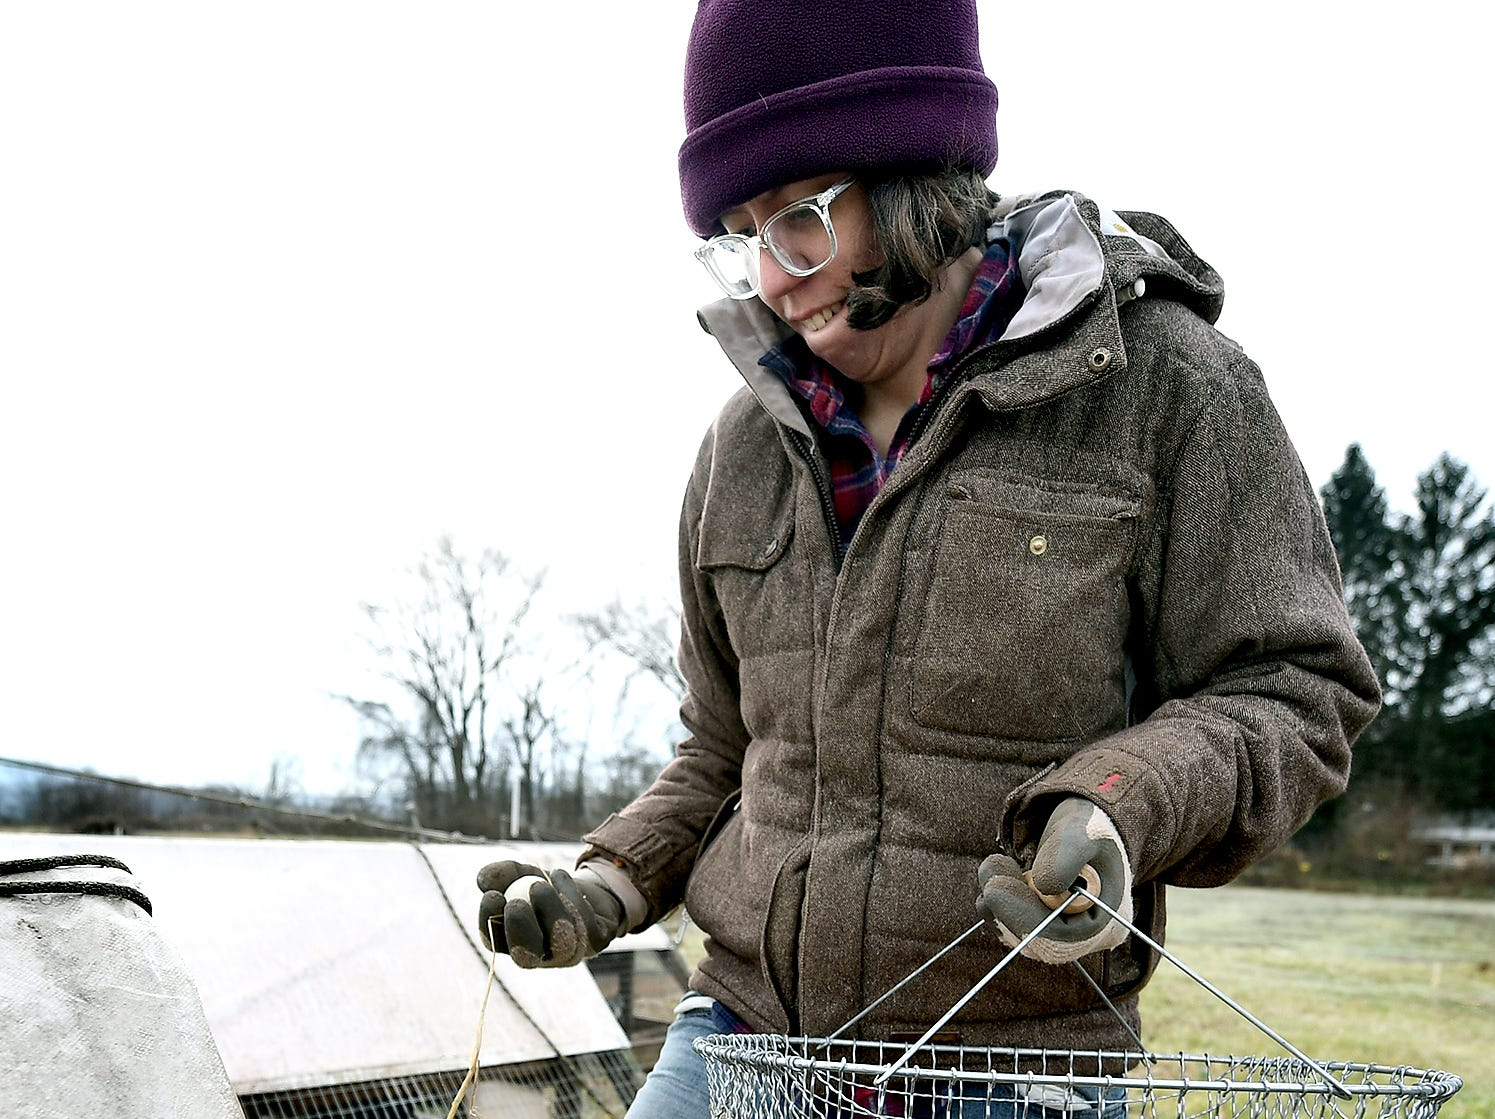 Claire O'Brien collects eggs at her family's sustainable Sunnyside Farm in Newberry Township Friday, Jan. 4, 2019. Bill Kalina photo